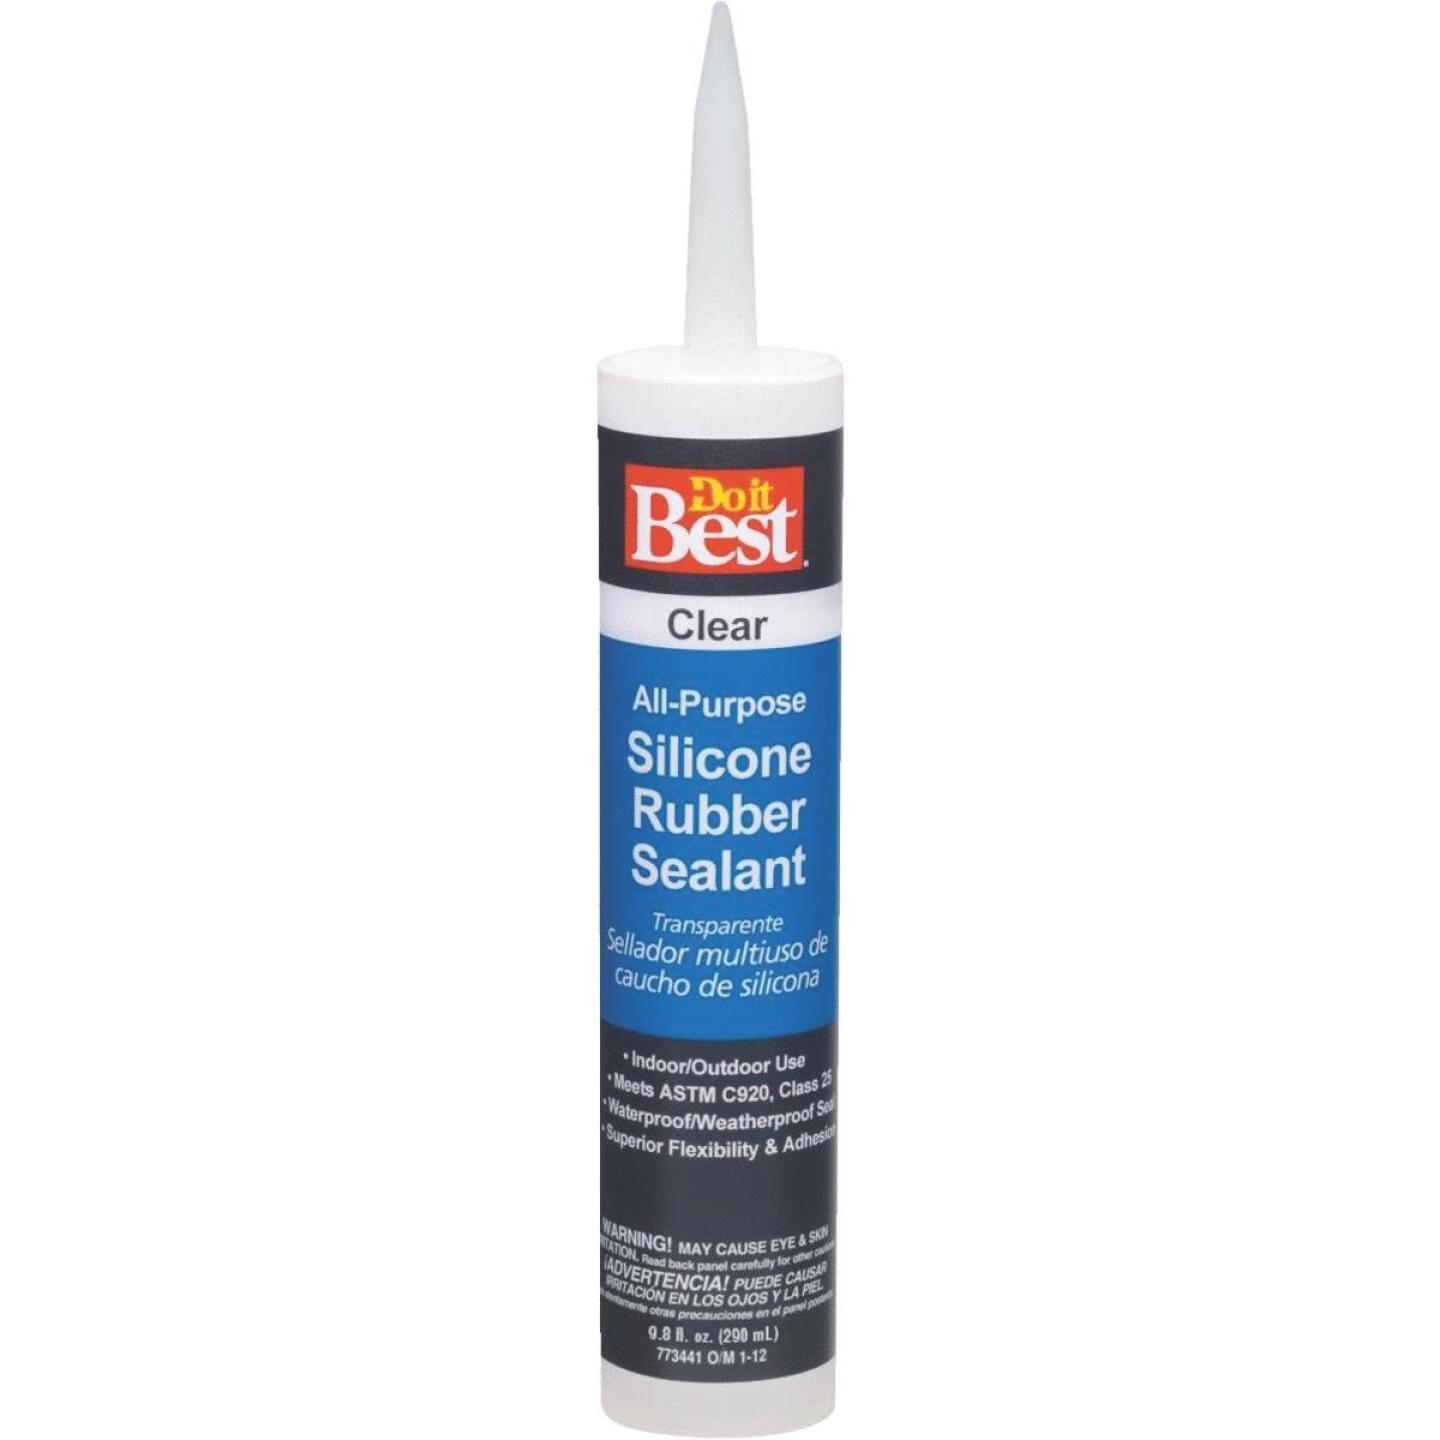 Do it Best 9.8 Oz. All-Purpose Silicone Sealant, Clear Image 1